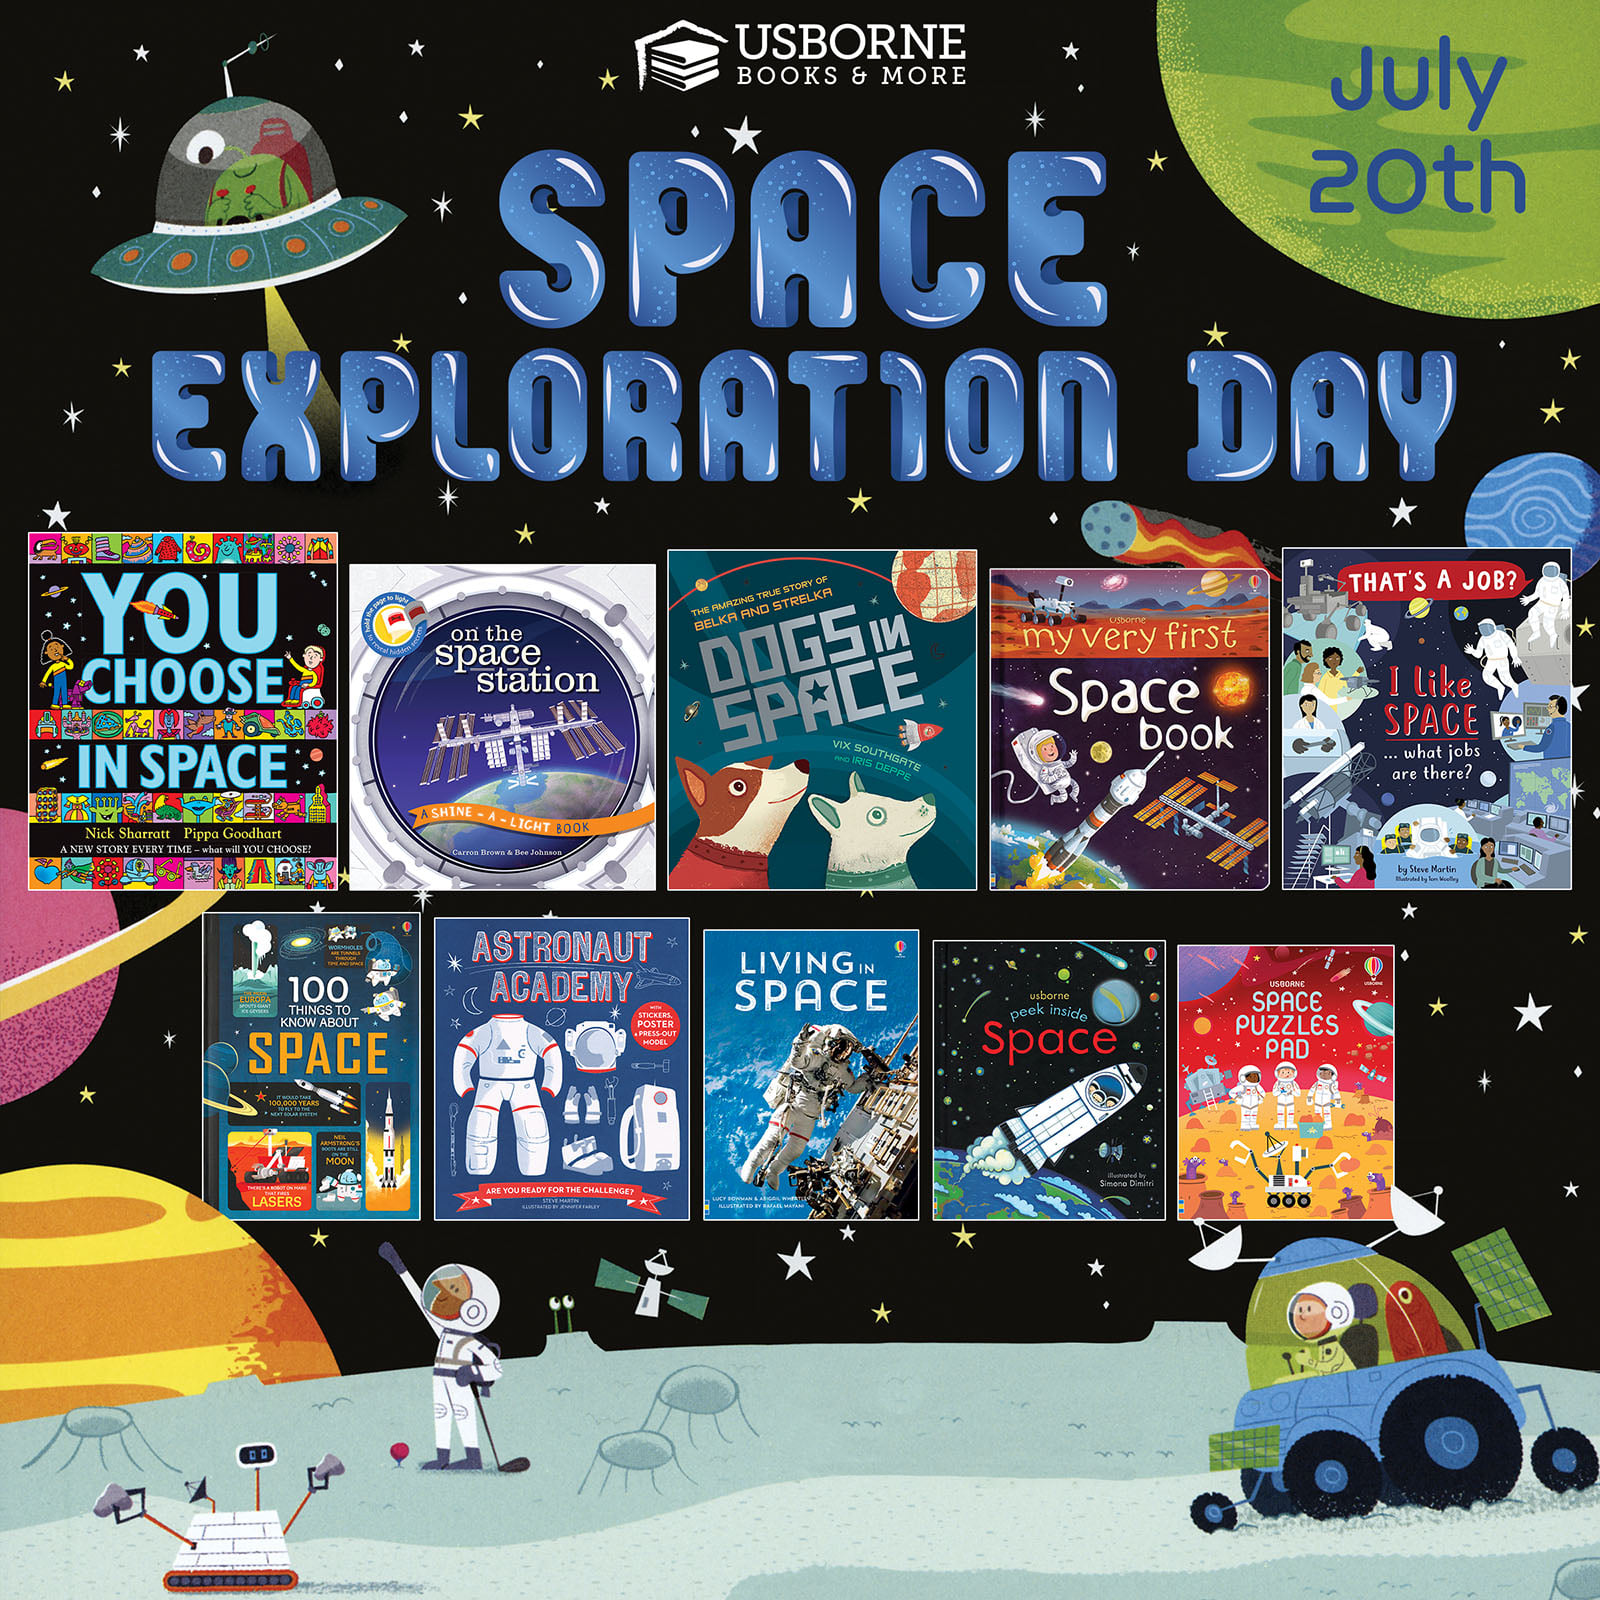 Space Exploration Day ~ July 20